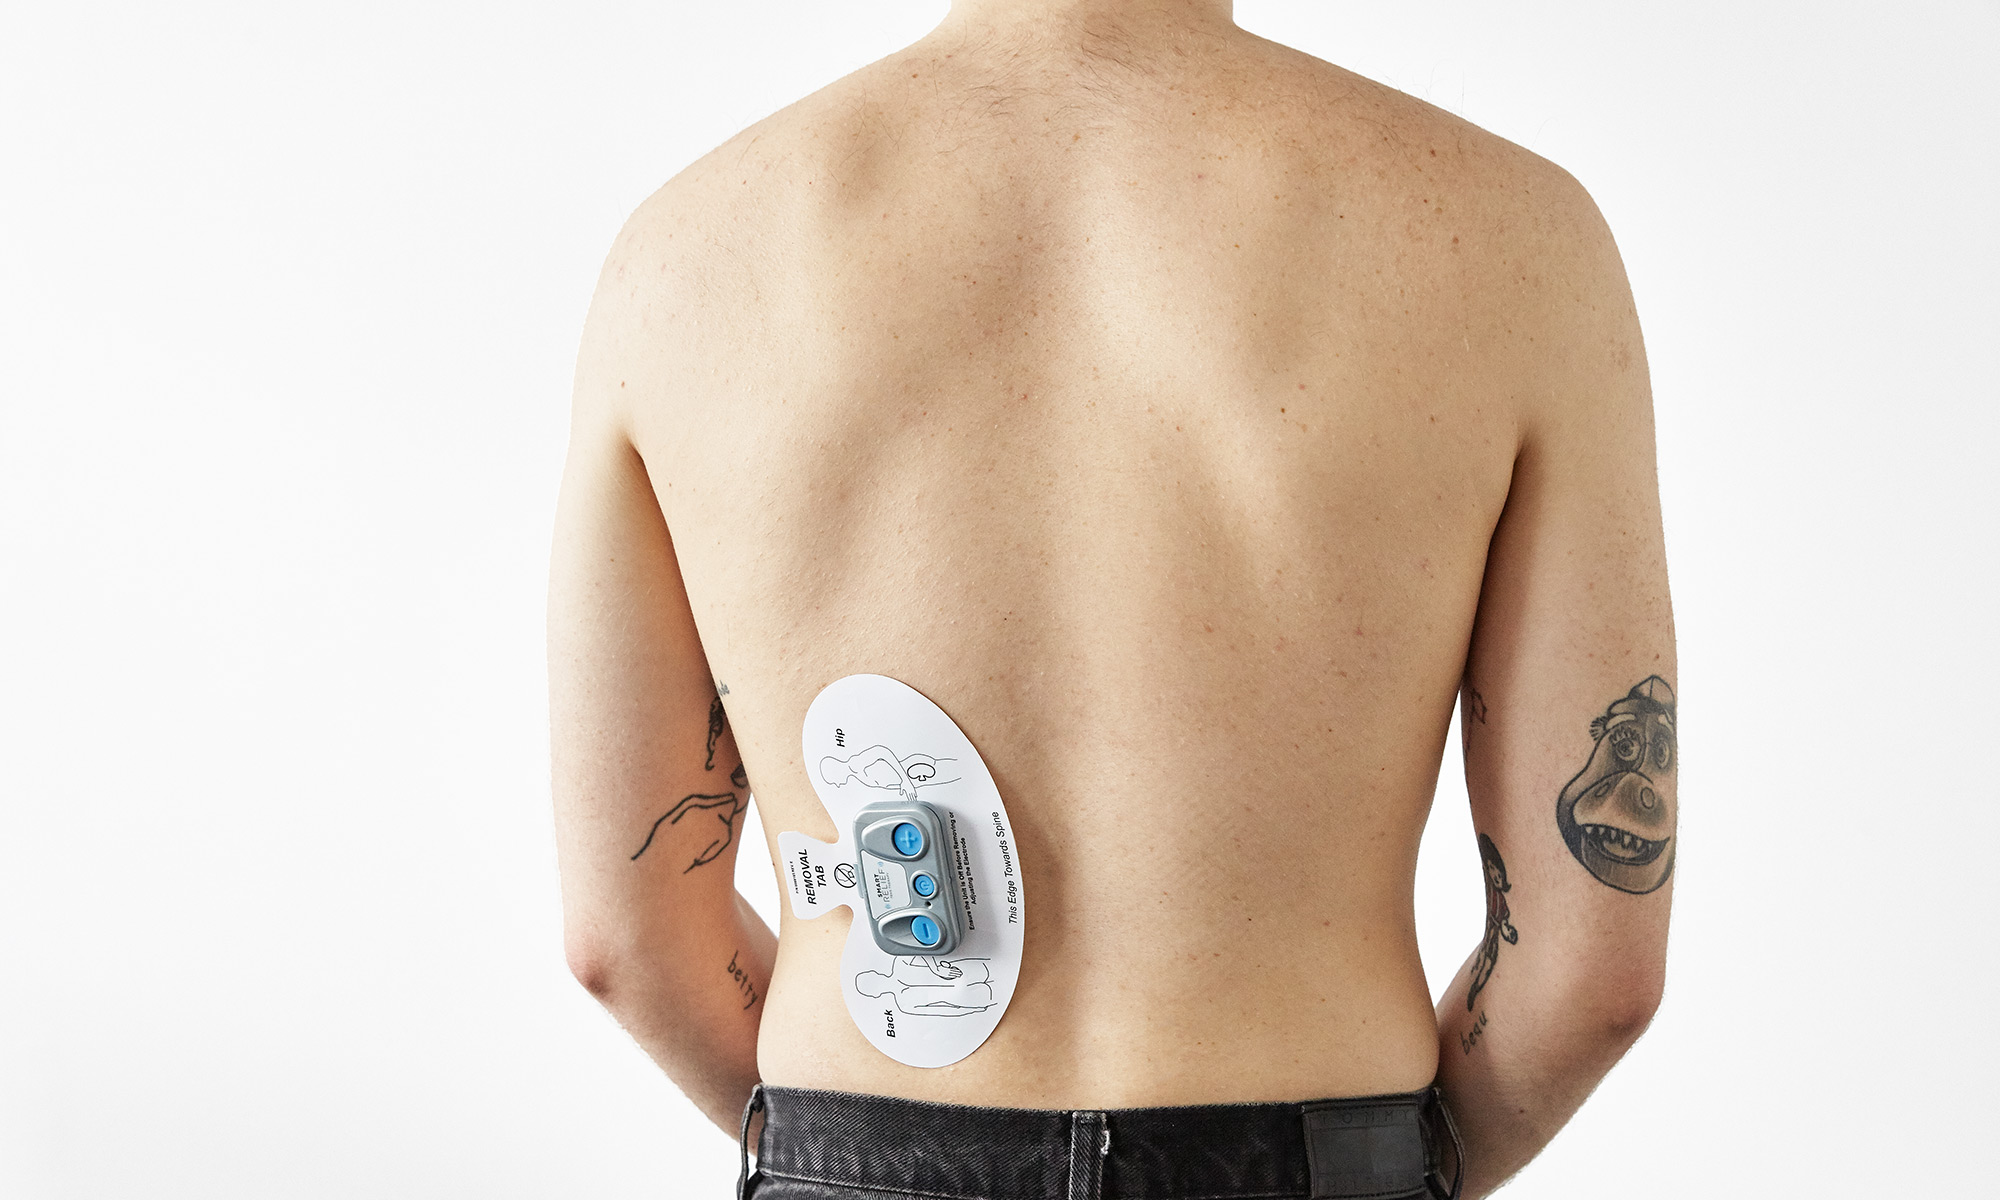 Pain Relief Tech Sounds Great, But Does It Really Work